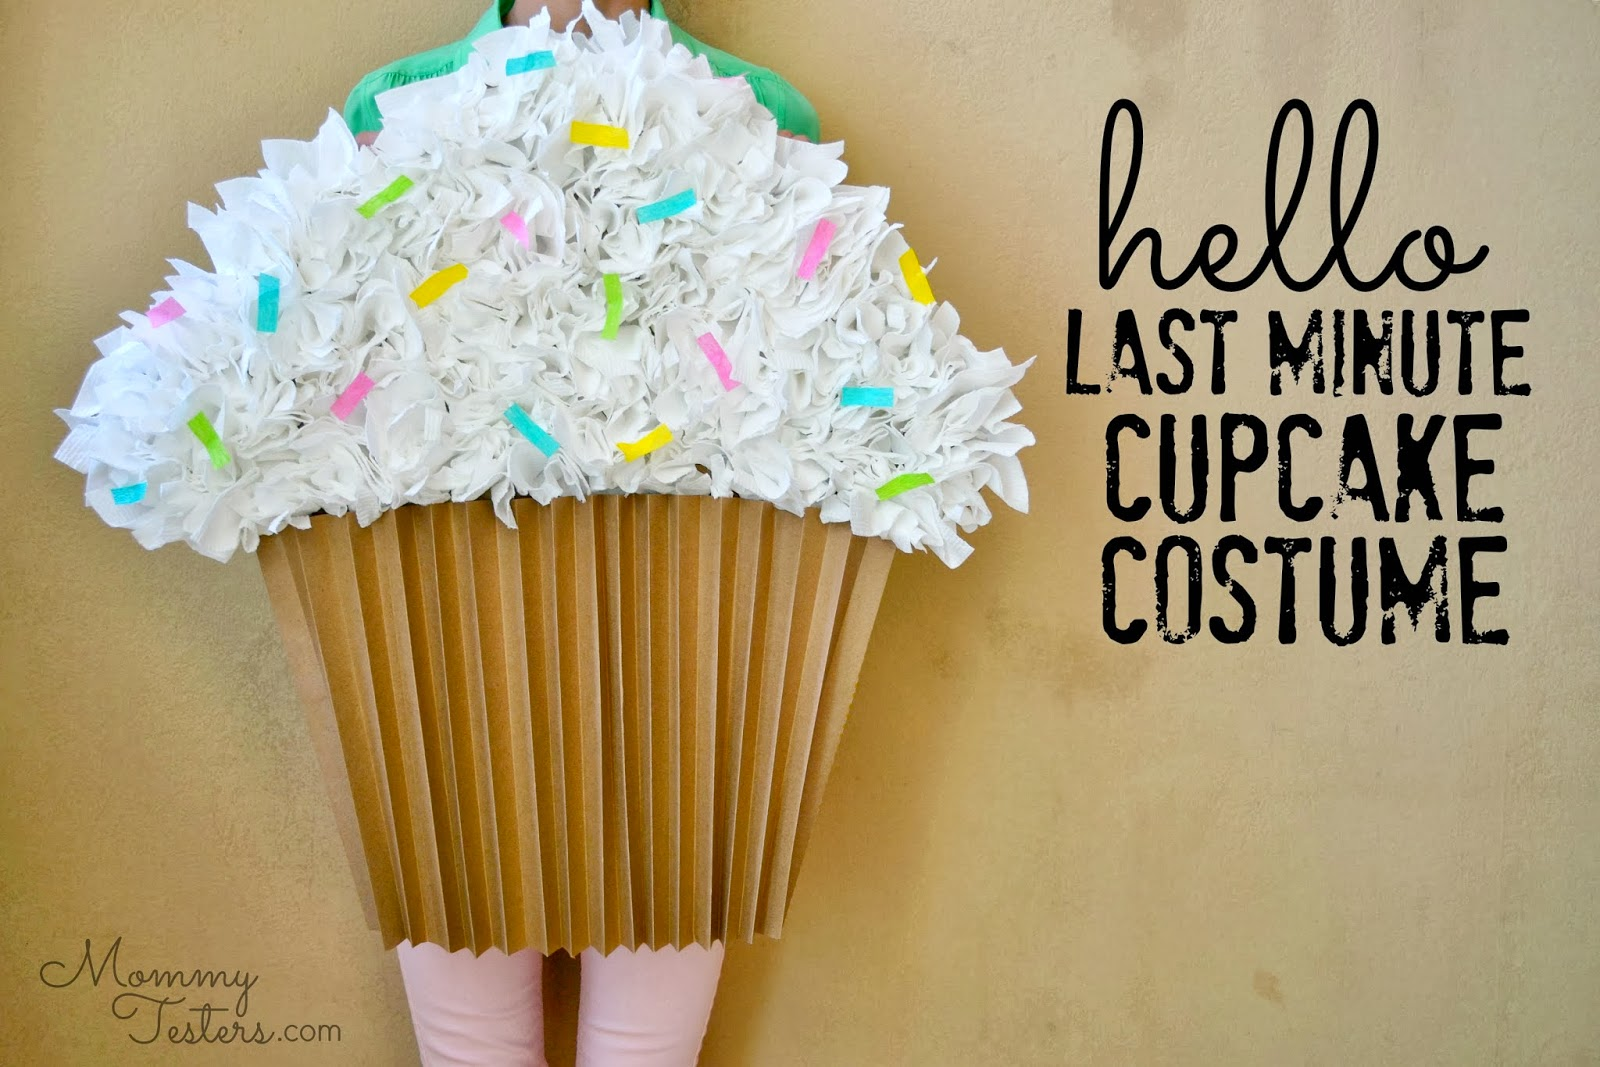 mommy testers easy diy cupcake costume last minute halloween mommy testers easy diy cupcake costume make a costume toilet paper toilet paper